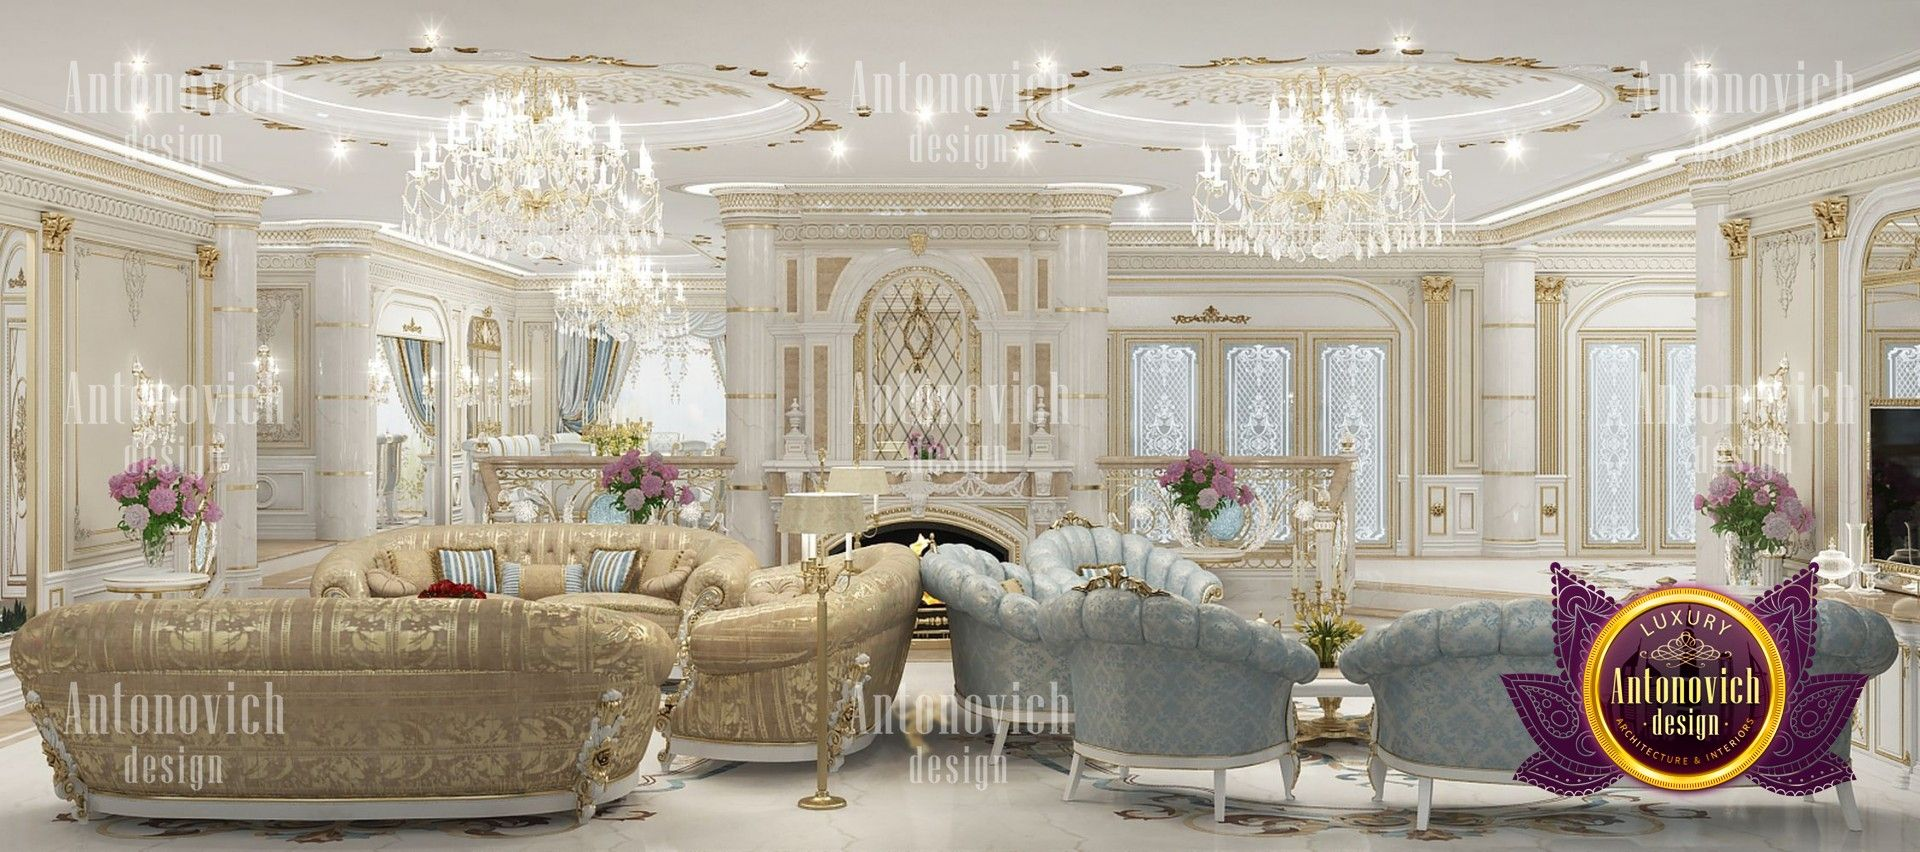 House Design Nigeria Lagos Luxury Bedroom Inspiration H